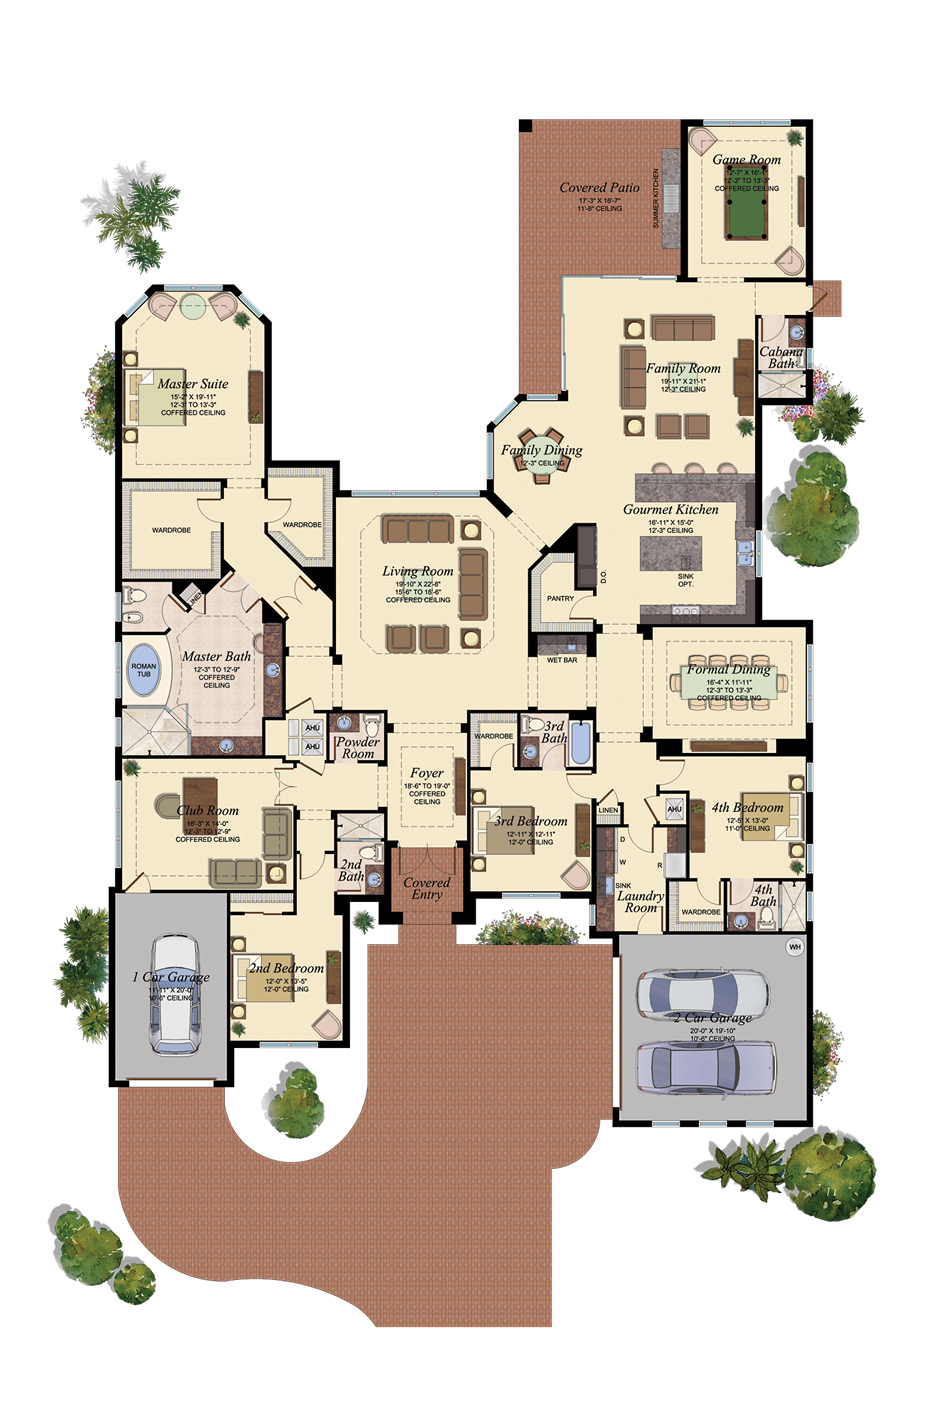 Floorplan Just Make The Club Room Into An Office Floor Plans Dream House Plans House Layouts